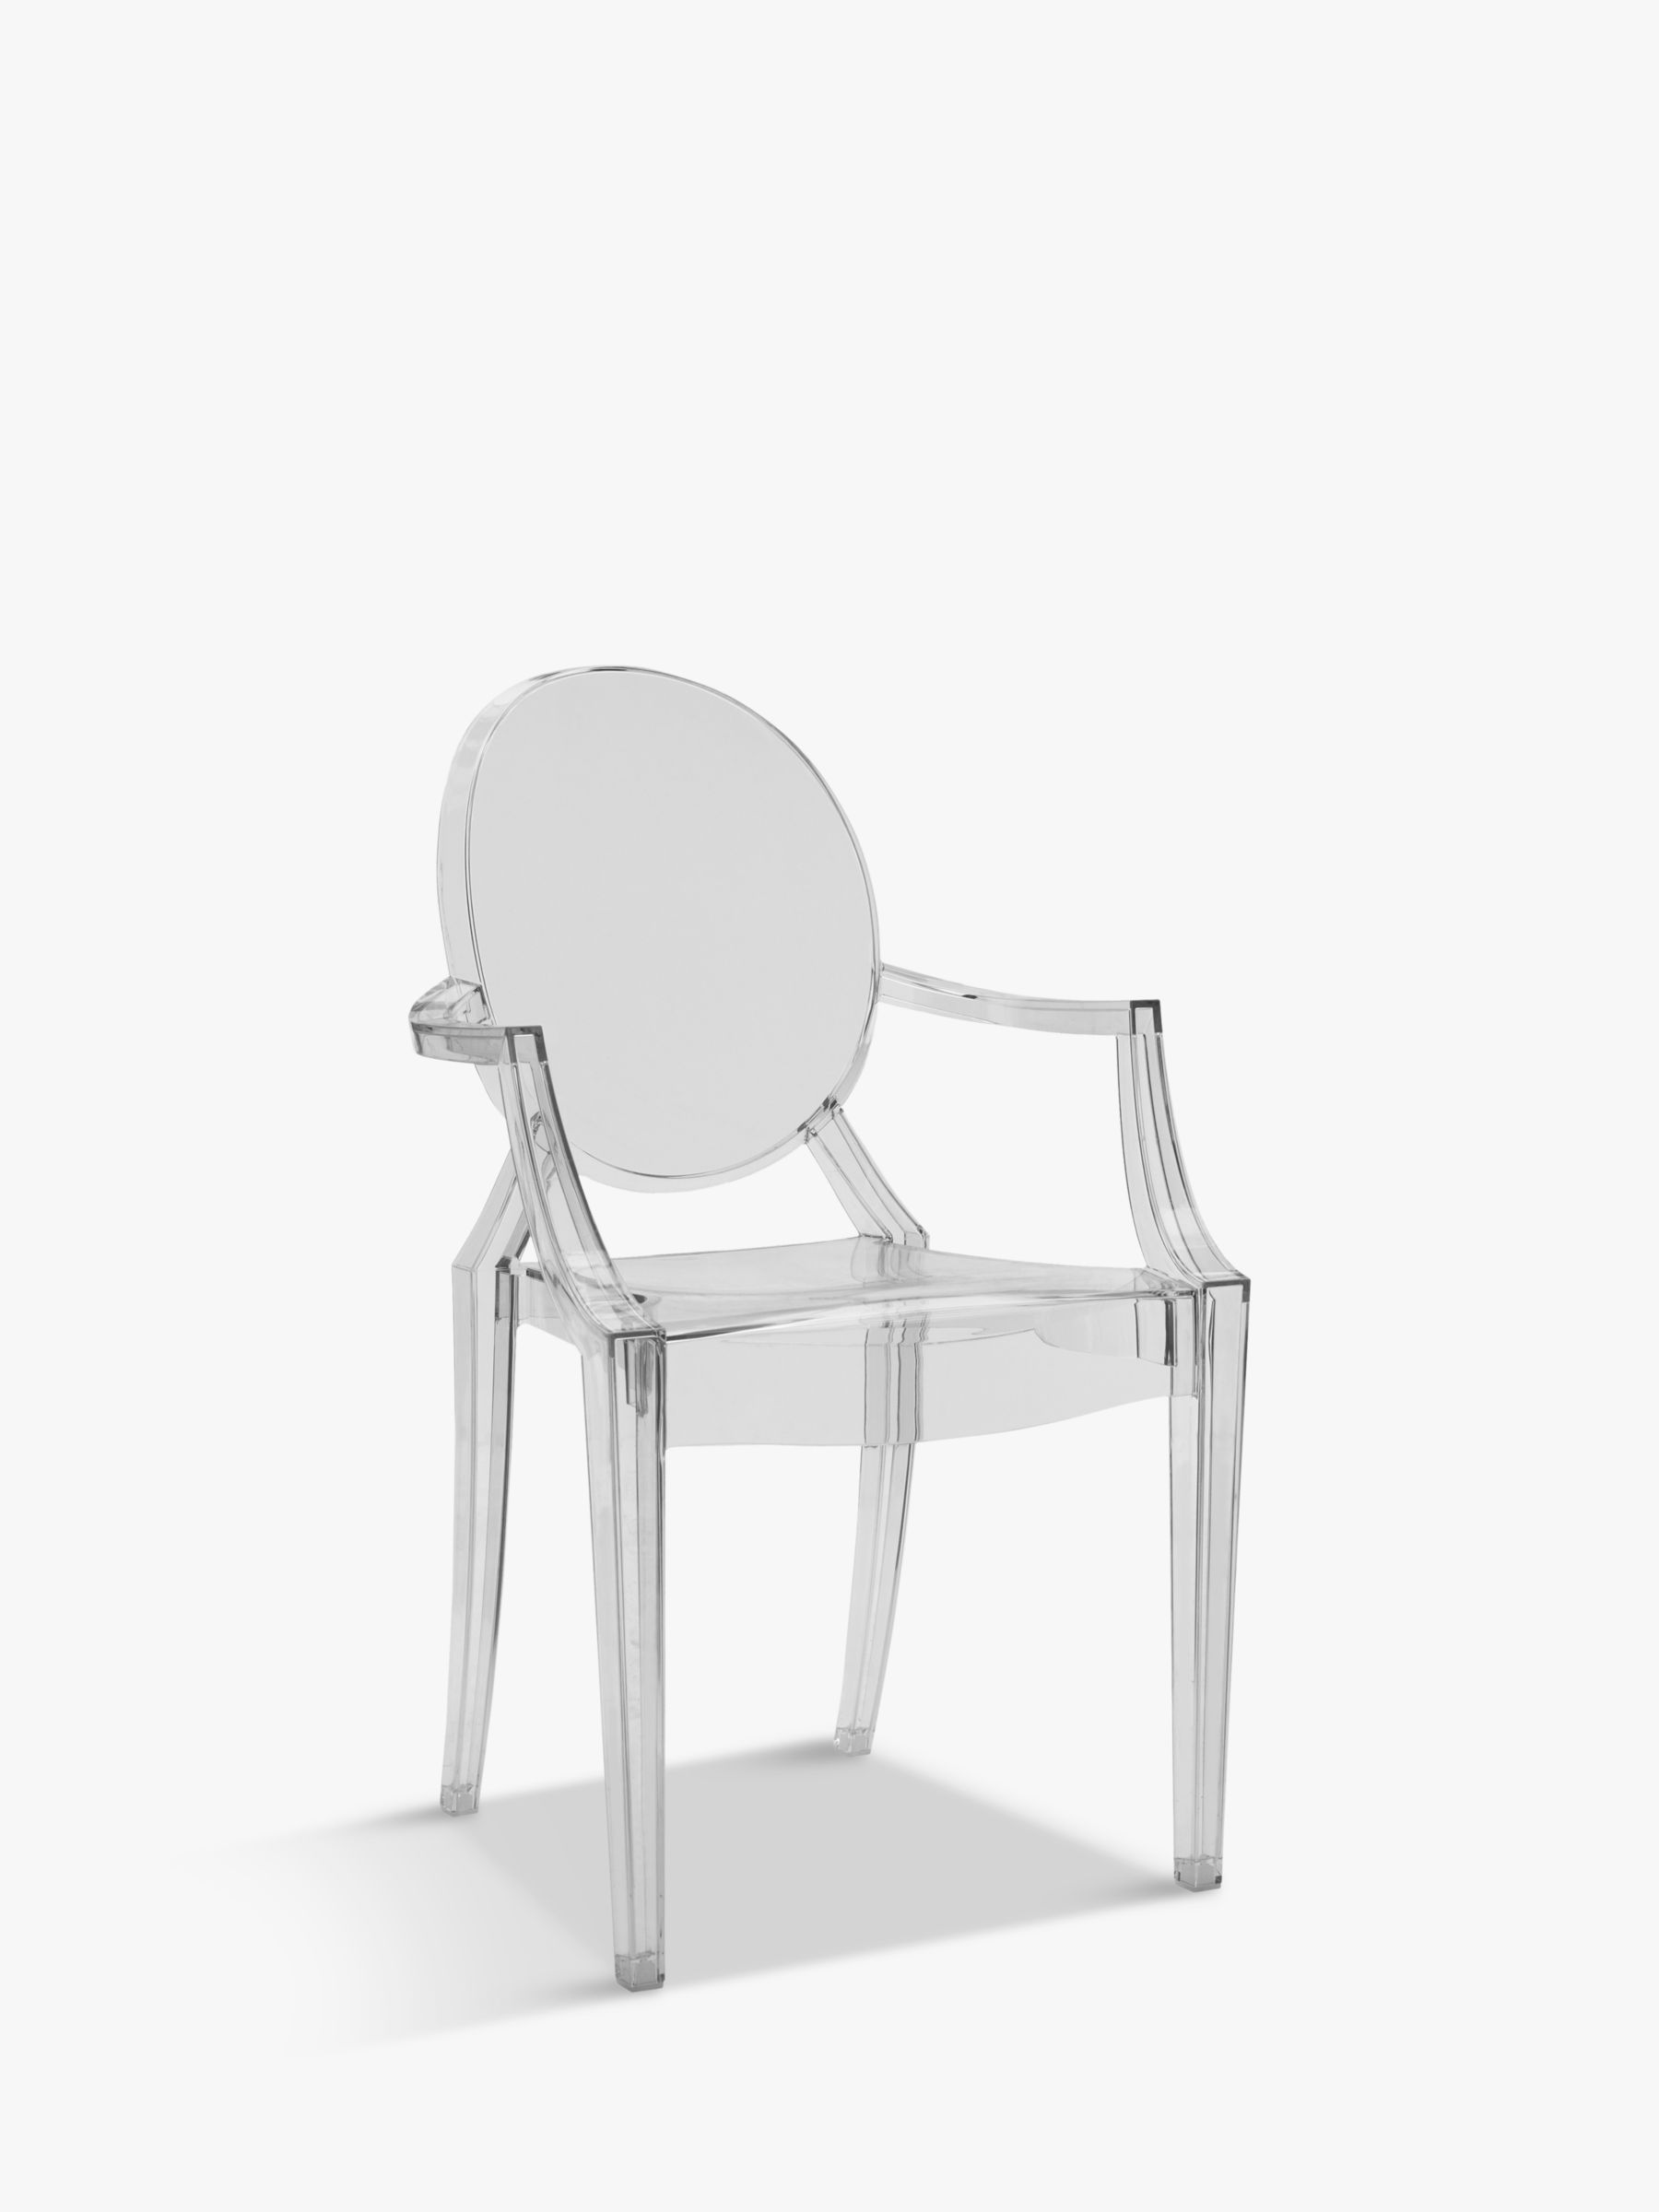 pinterest furniture decoration fauteuil in design emeco armchair chair with ghost starck polished aluminium by made and pin kong philippe